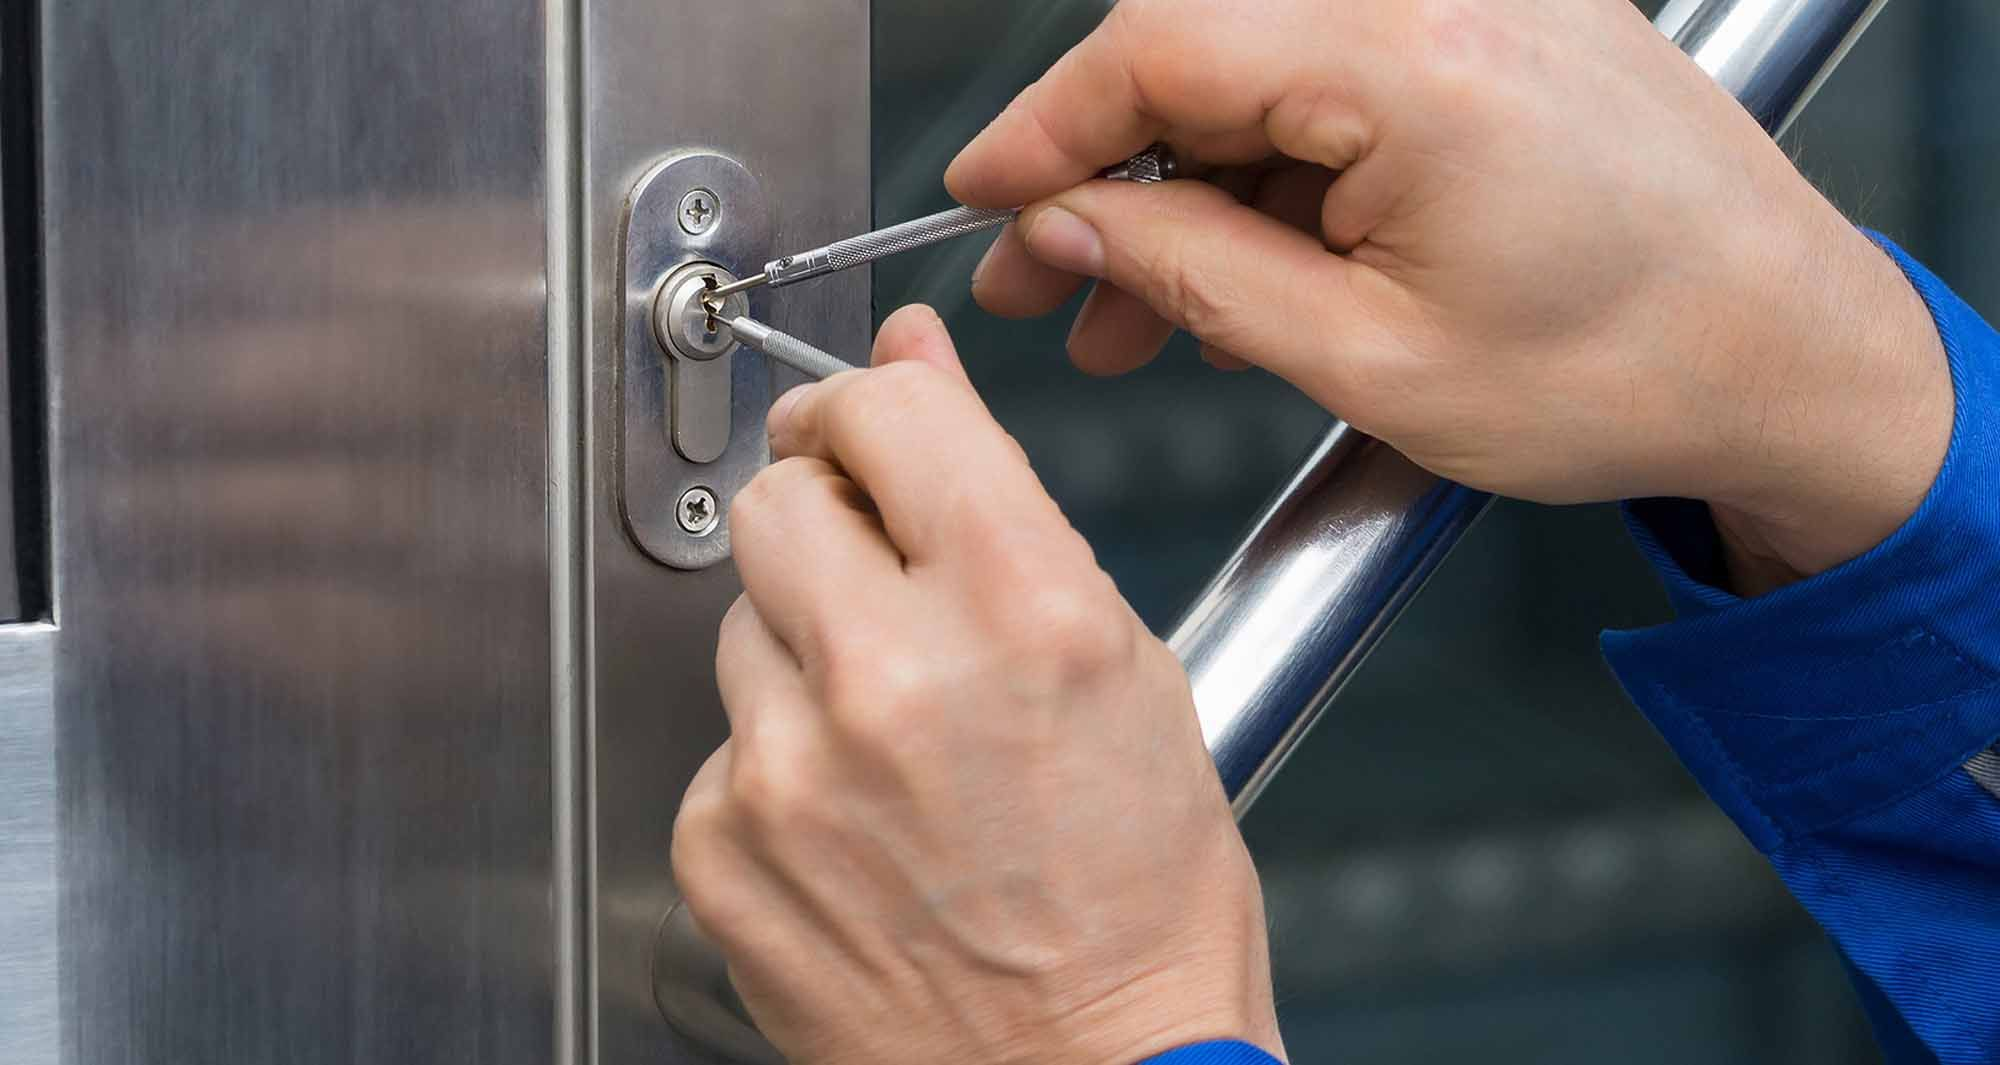 Sos Locksmith Dallas Are Proud To Be Able To Create Any Lock Rekey